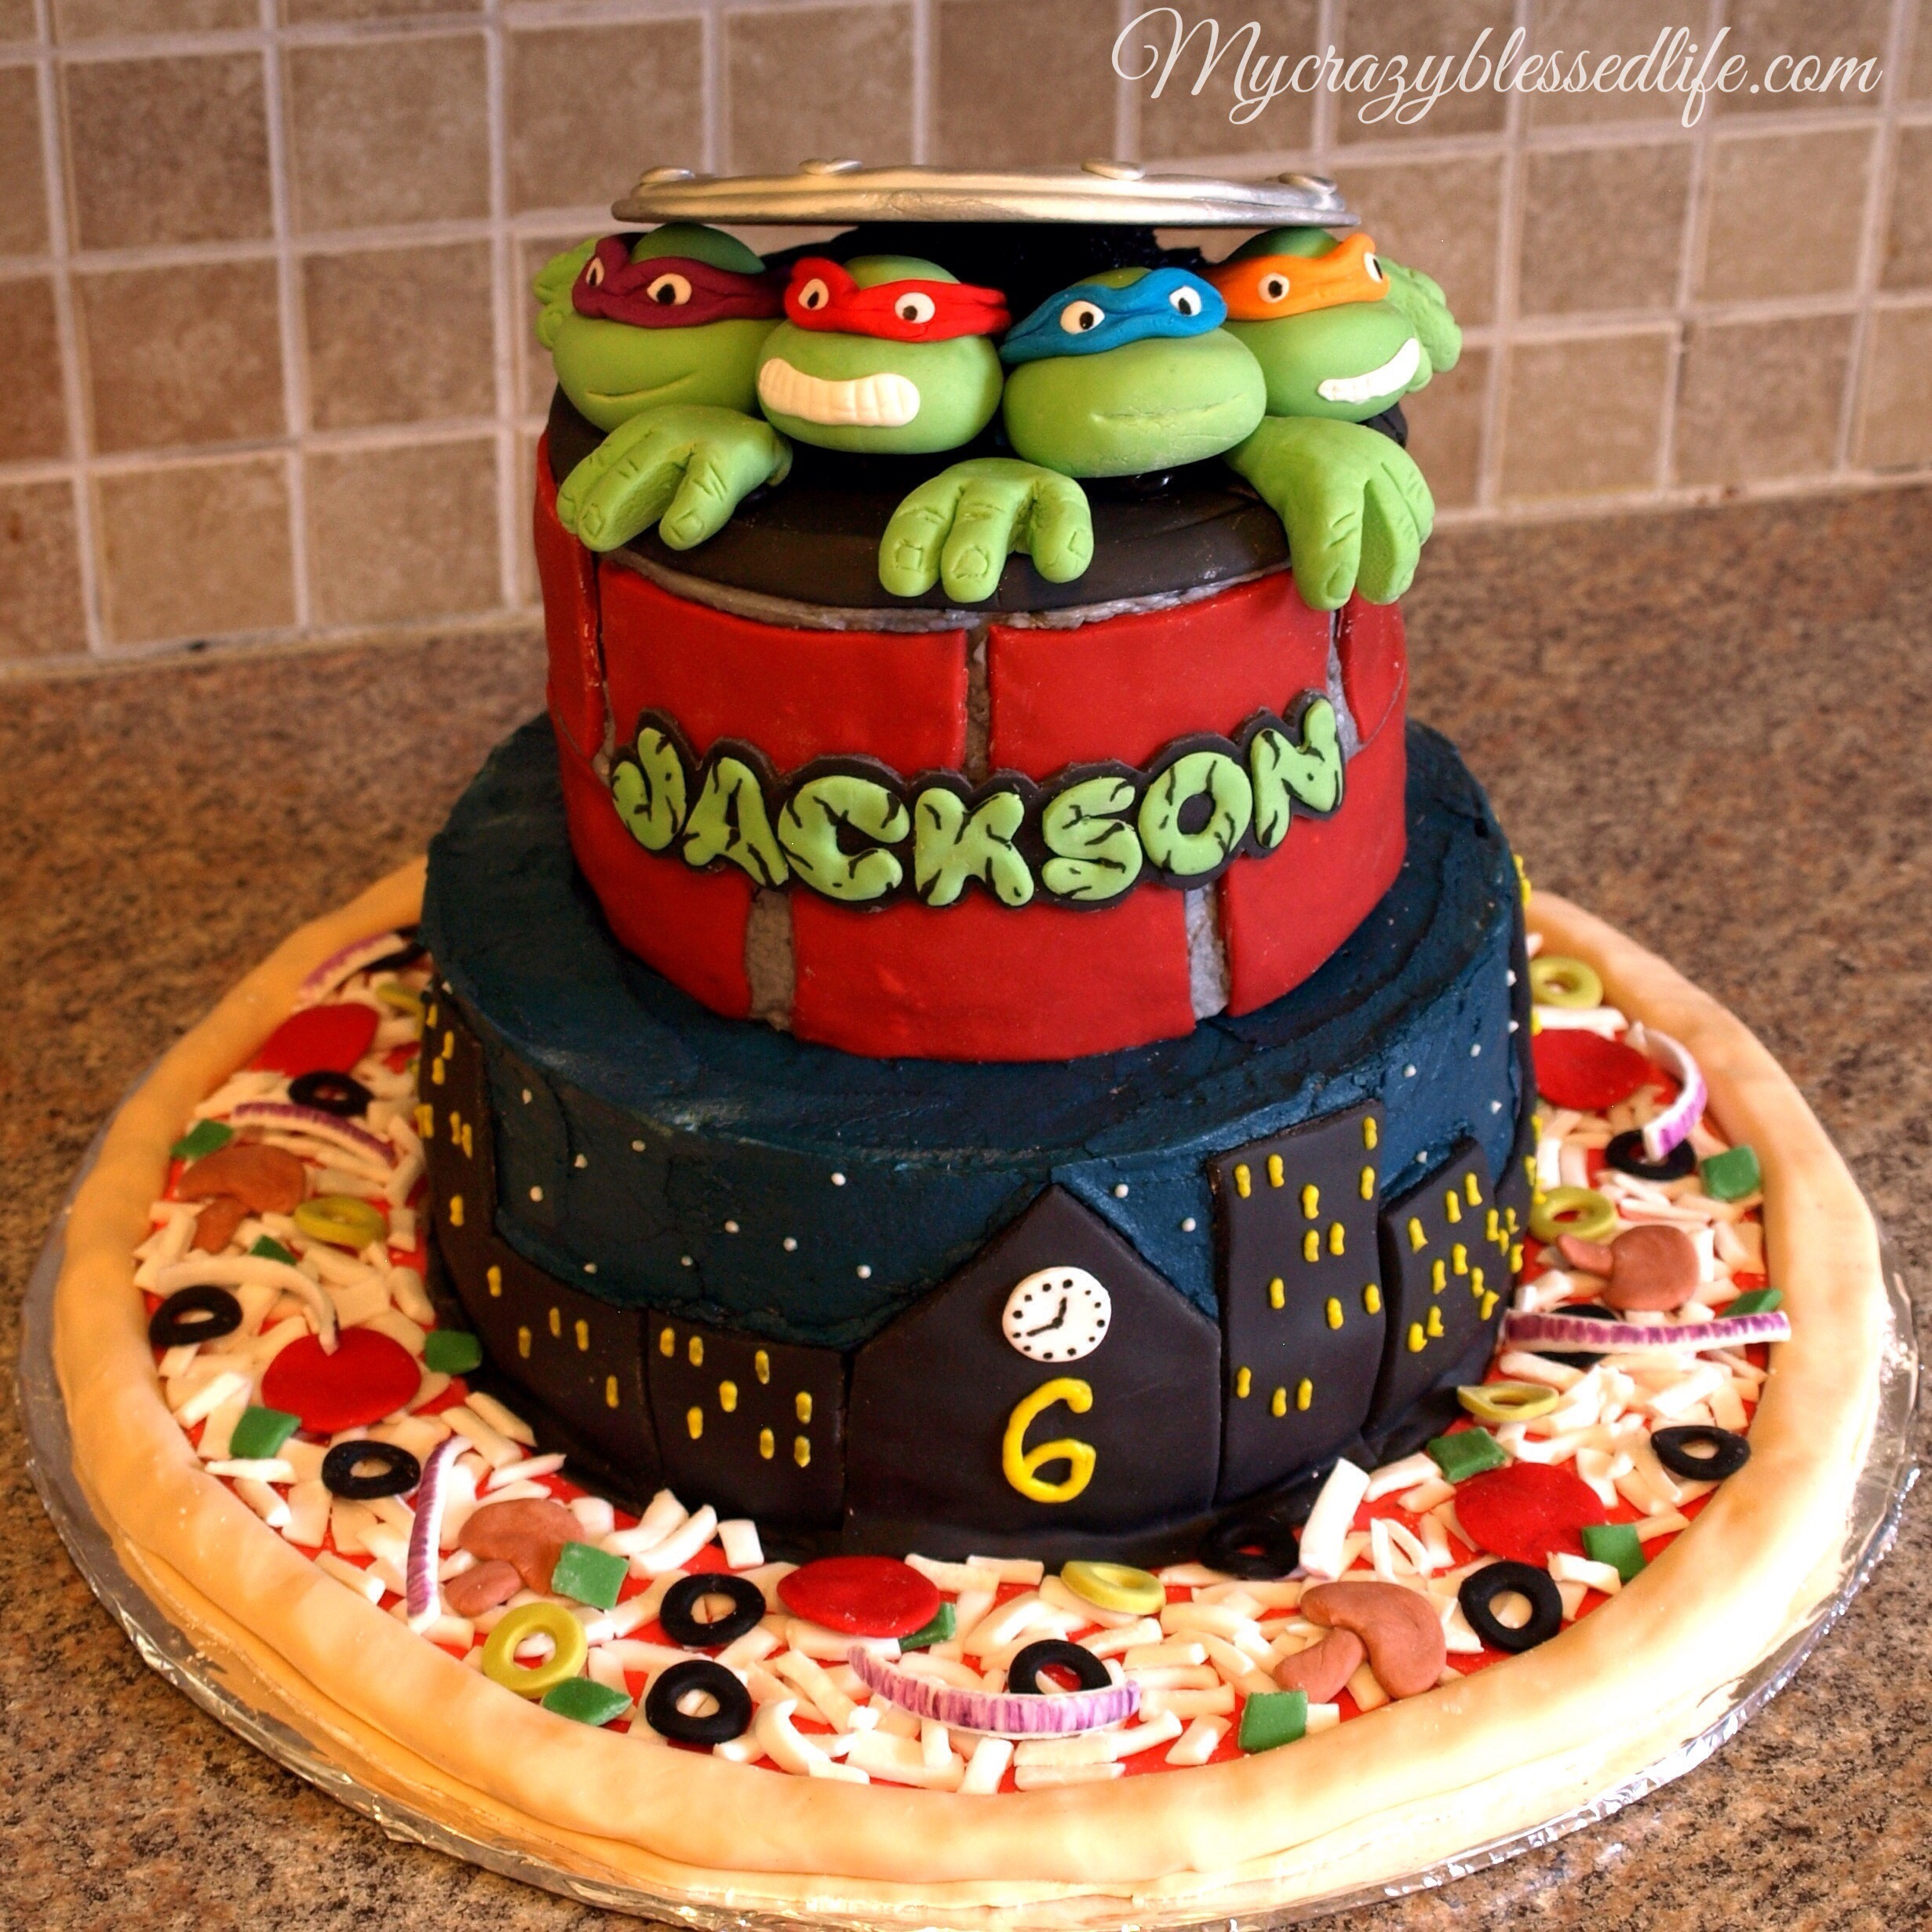 Ninja Turtles Cake My Crazy Blessed Life